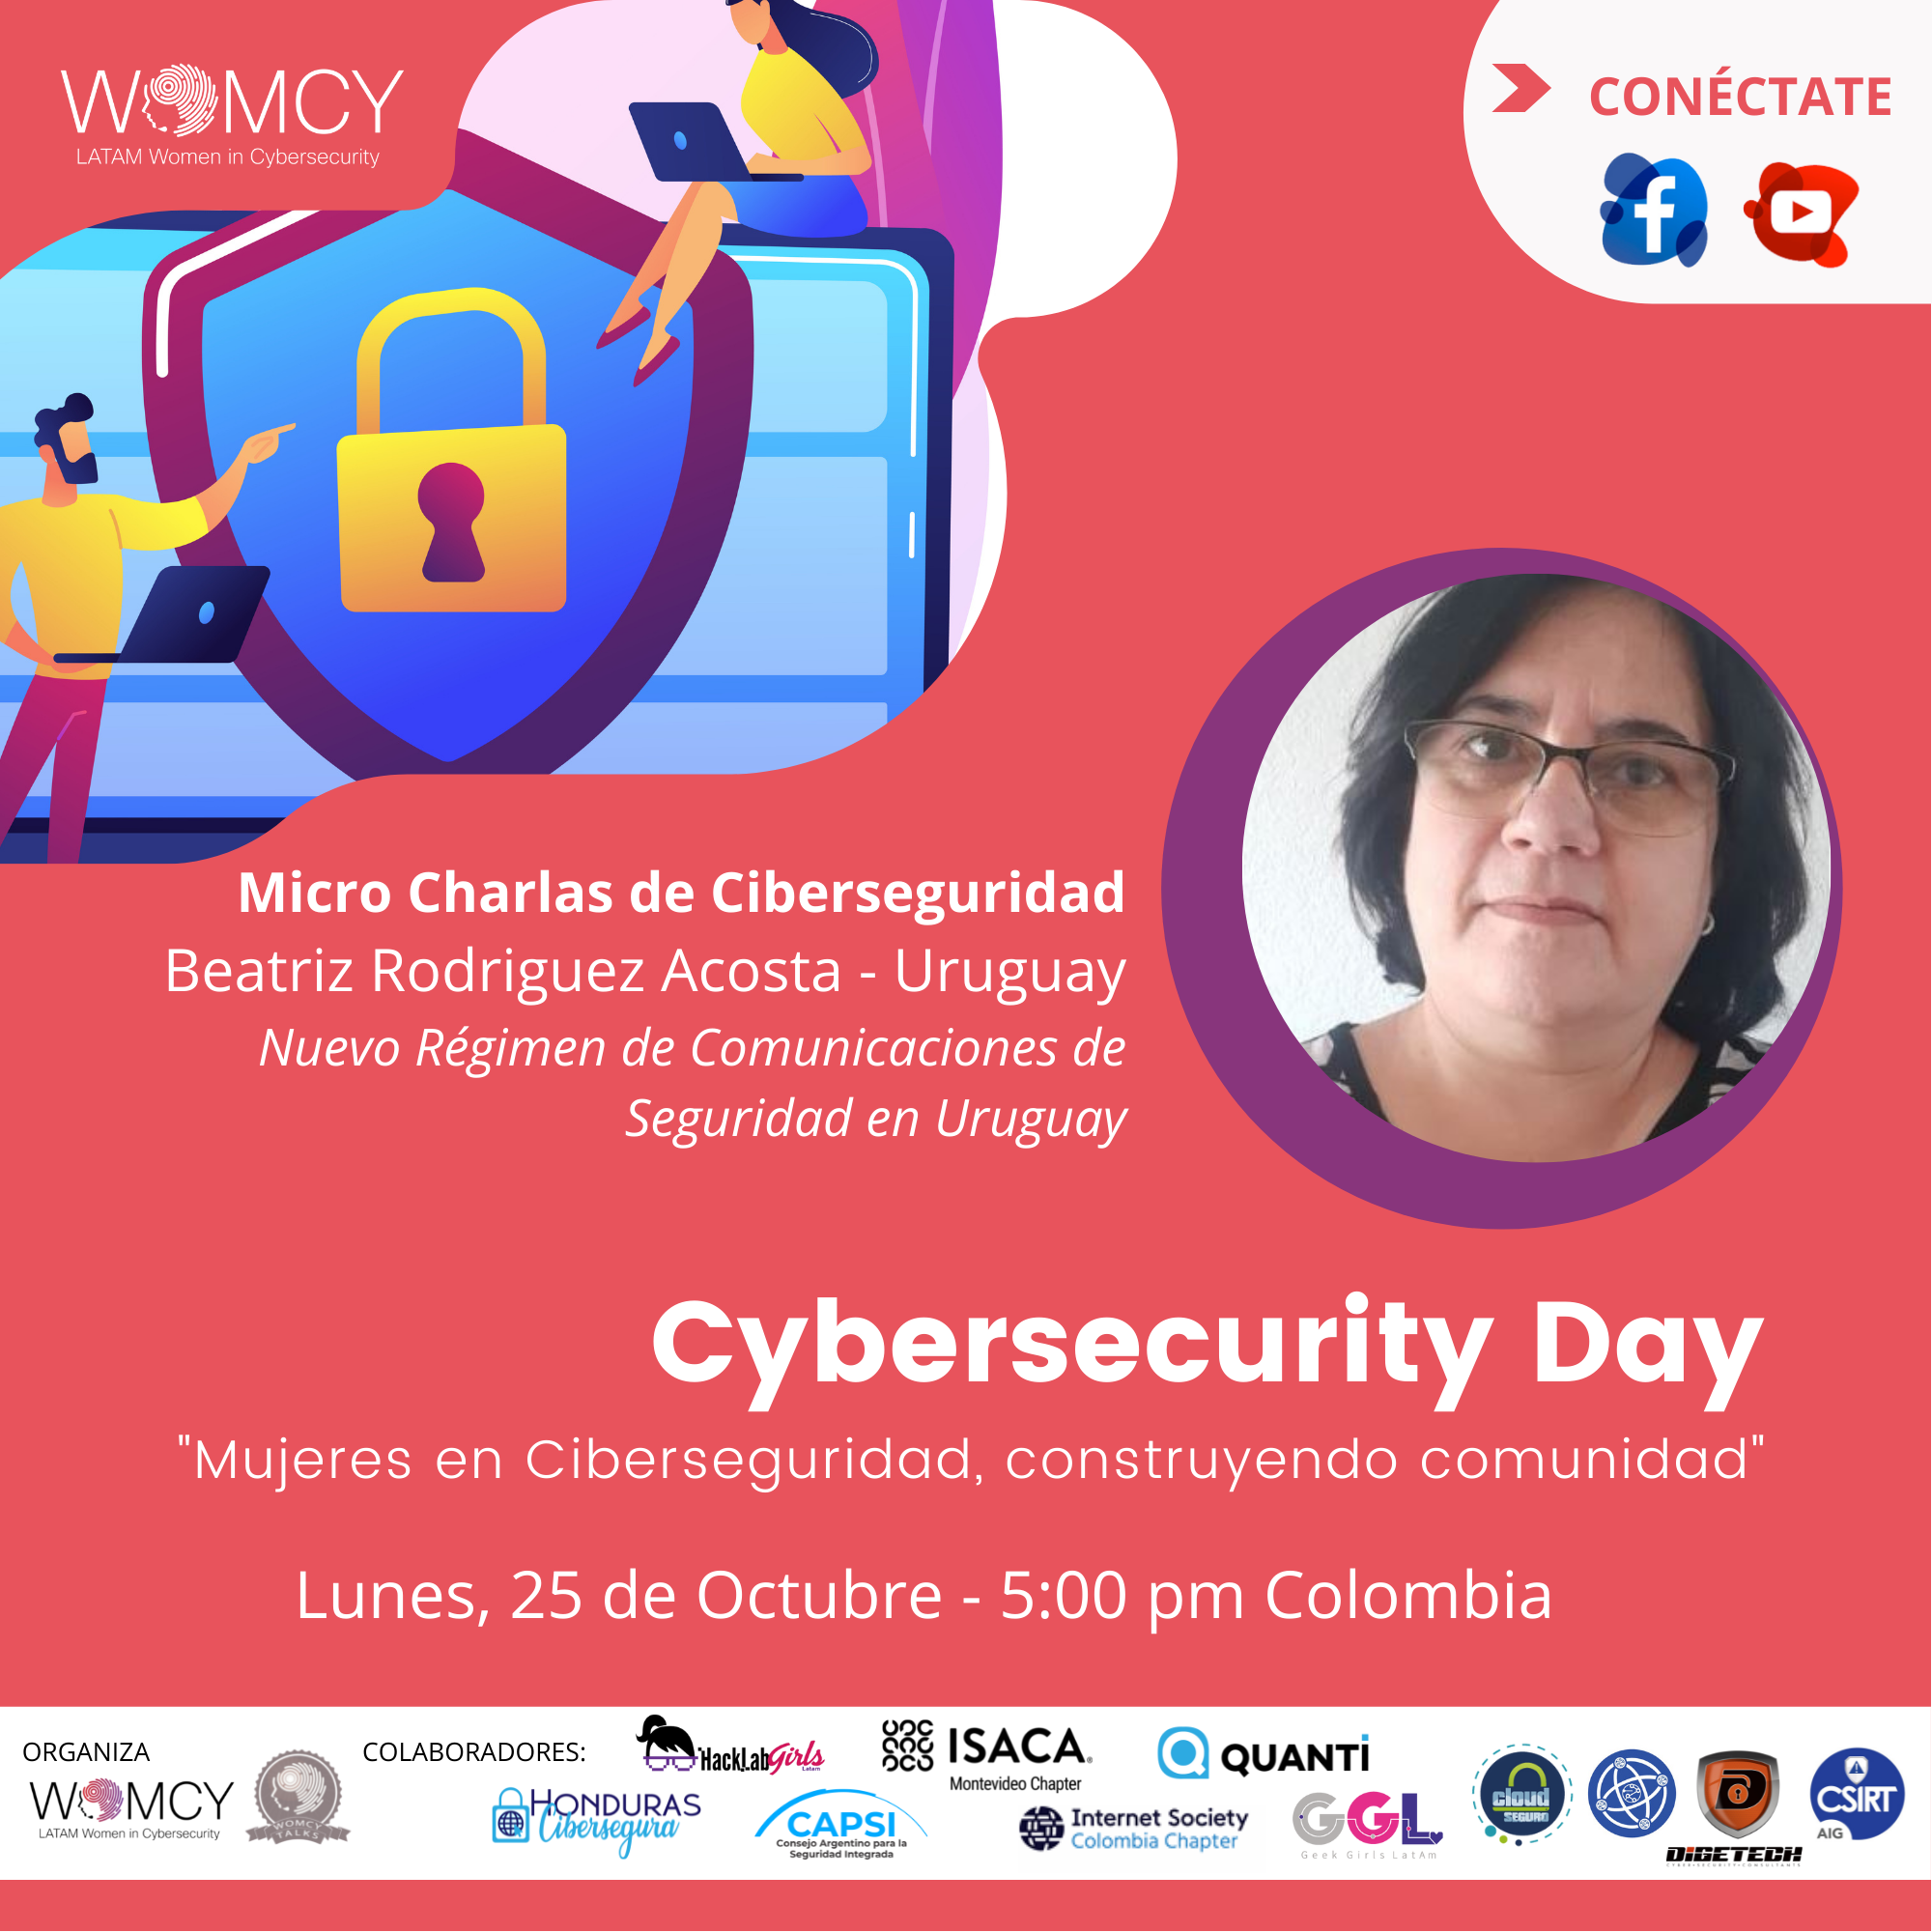 Imagen alusiva a Cybersecurity Day